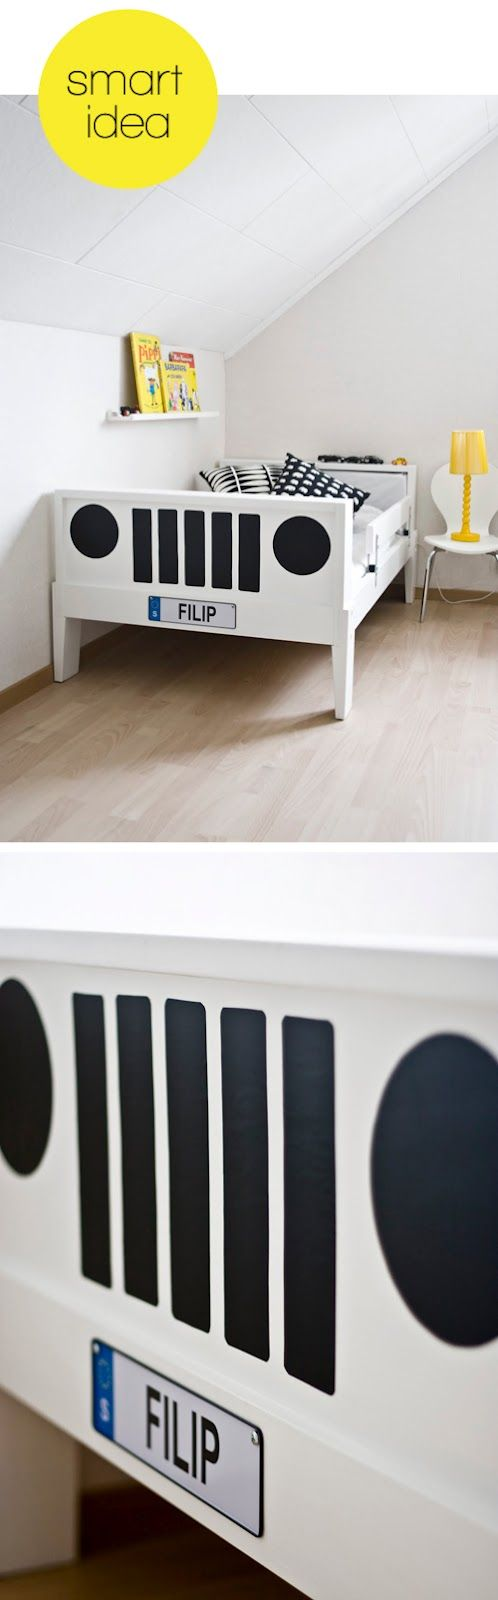 Baby jeep bed - Boys Bed Idea For Temporary Car Decals